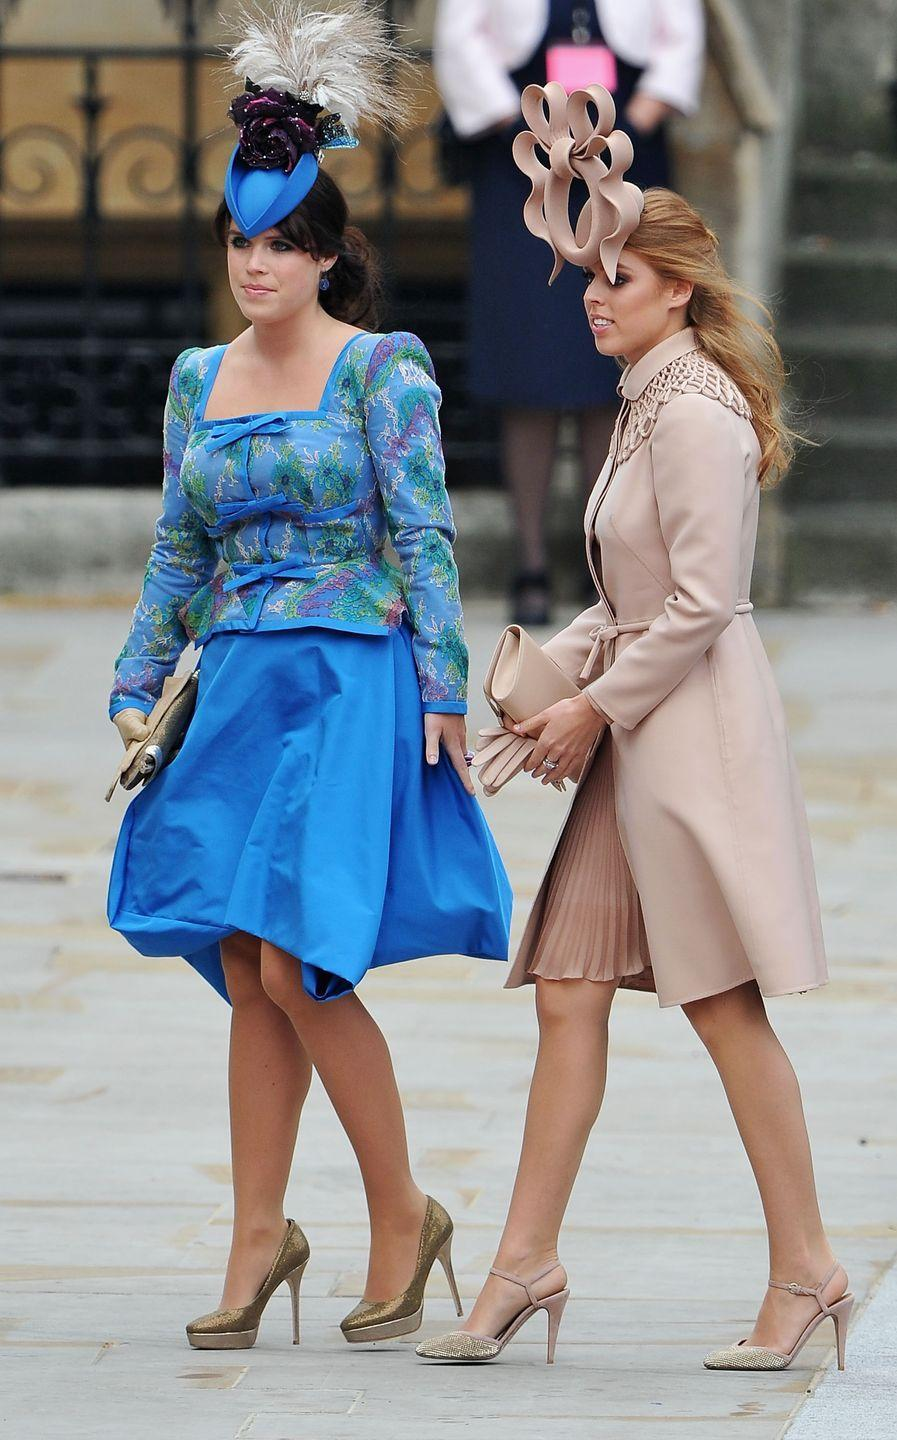 """<p>Princess Beatrice and Eugenie of York's fascinators at the royal wedding in 2011 were so over-the-top <a href=""""https://www.townandcountrymag.com/society/tradition/a19459886/princess-beatrice-facts/"""" rel=""""nofollow noopener"""" target=""""_blank"""" data-ylk=""""slk:they even spawned a parody Facebook account"""" class=""""link rapid-noclick-resp"""">they even spawned a parody Facebook account</a>. We can't wait to see what Beatrice wears to <a href=""""https://www.townandcountrymag.com/society/tradition/a15841755/princess-eugenie-jack-brooksbank-wedding/"""" rel=""""nofollow noopener"""" target=""""_blank"""" data-ylk=""""slk:her sister's wedding in October."""" class=""""link rapid-noclick-resp"""">her sister's wedding in October.</a></p>"""